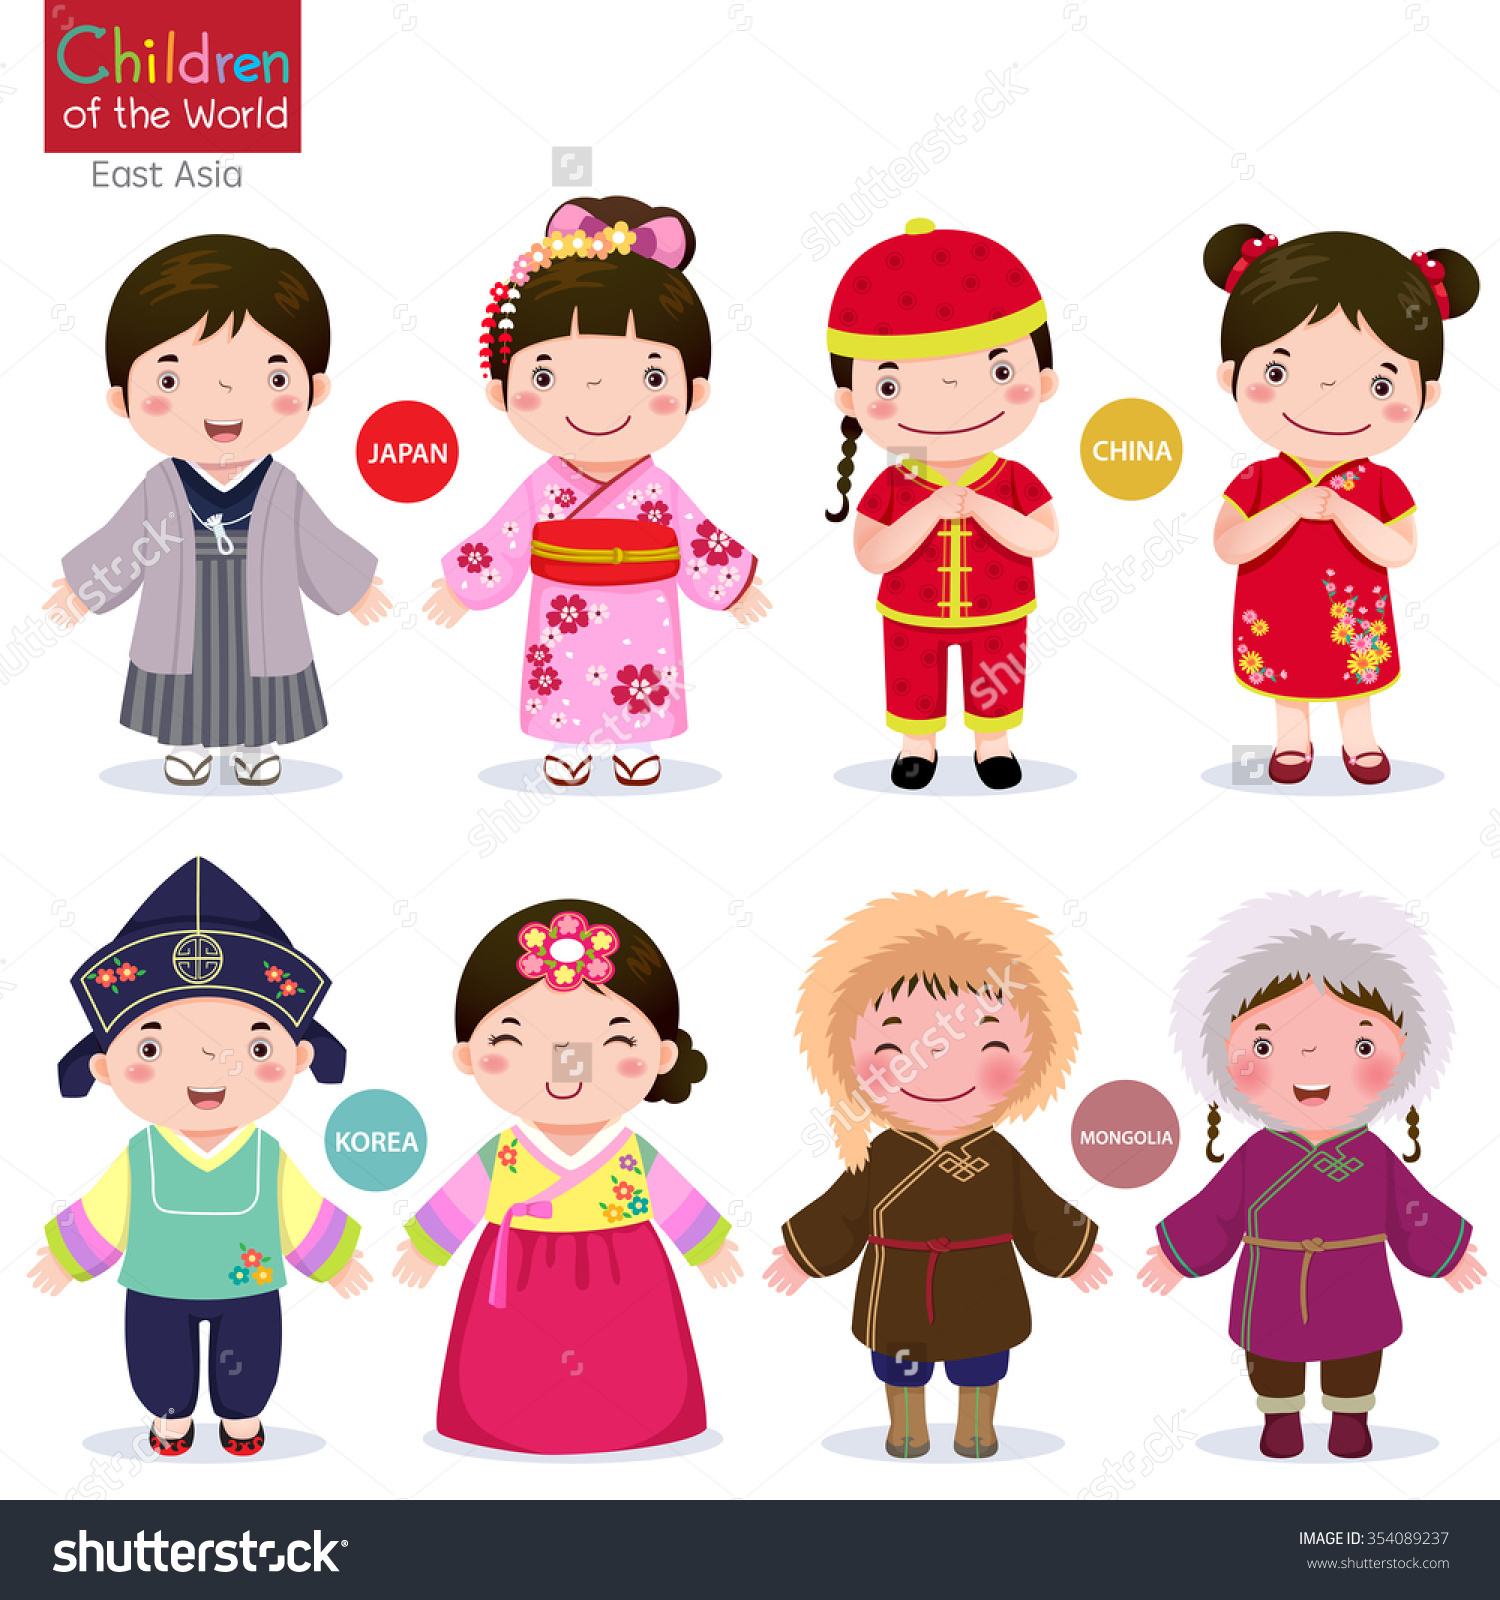 Asians clipart chinese kid #4